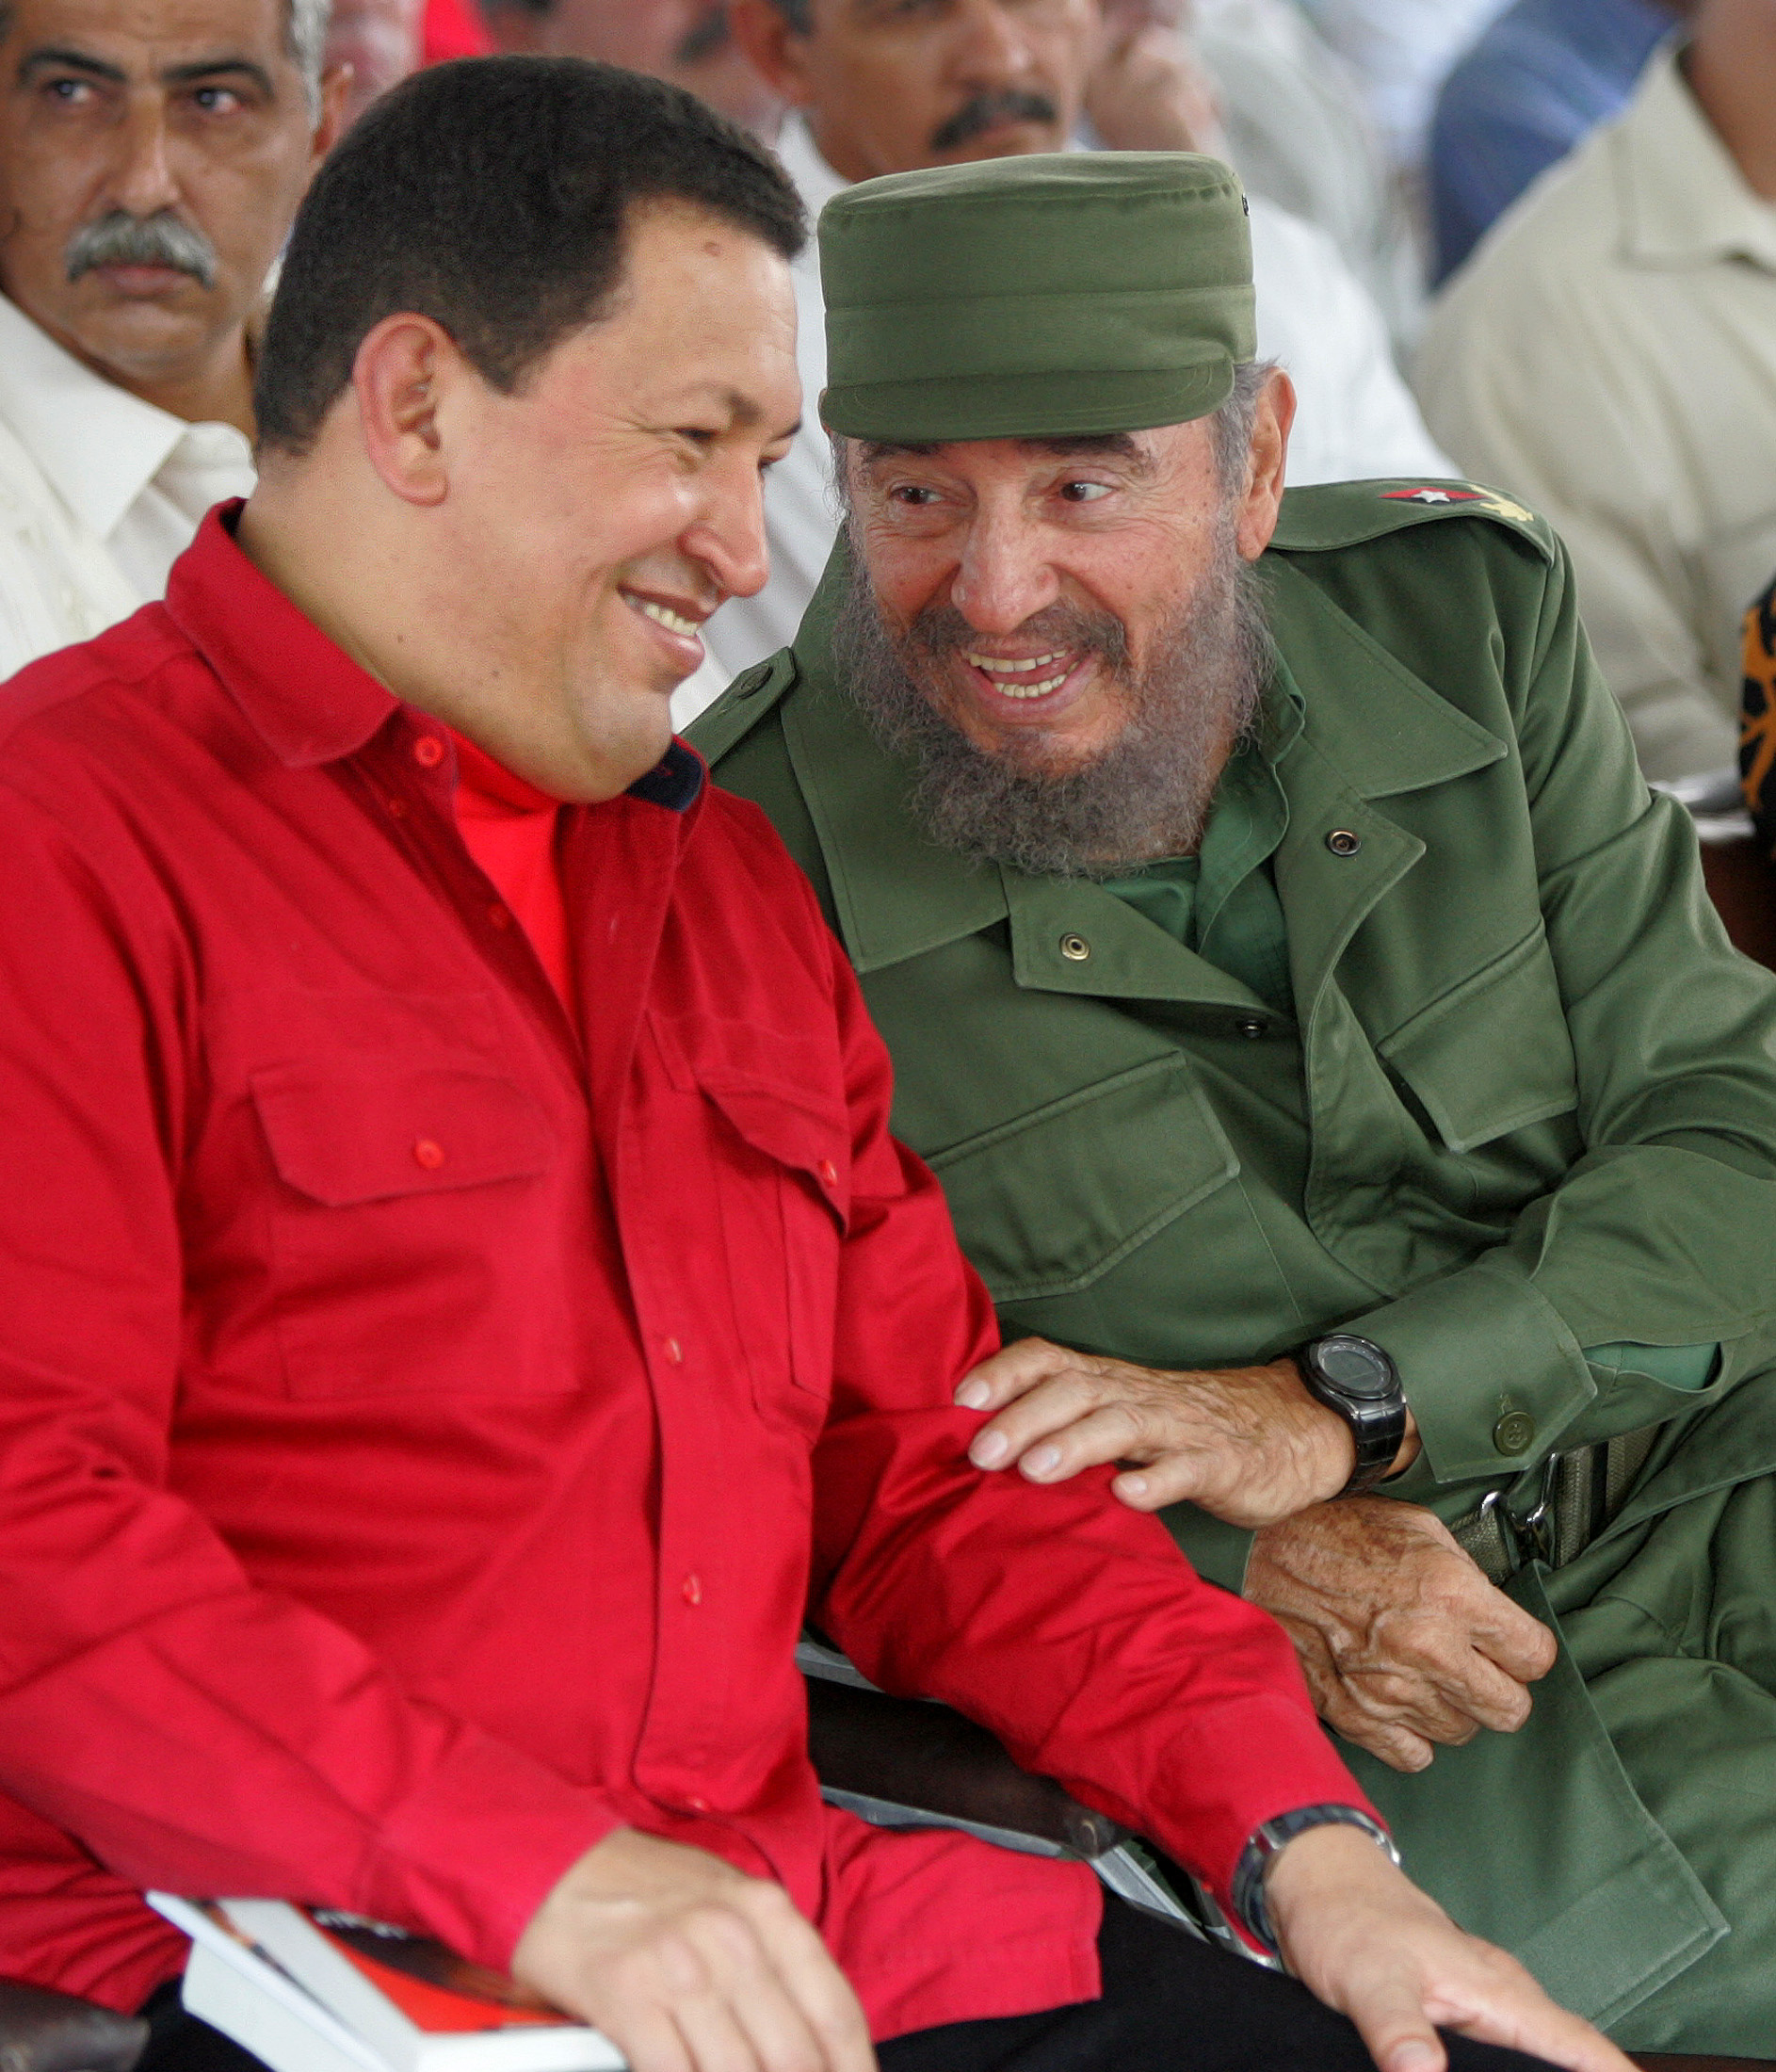 Cuban President Fidel Castro (R) and his Venezuelan counterpart Hugo Chavez share a laugh during the opening ceremony of the International Book Fair in Havana February 3, 2006. ©REUTERS/Claudia Daut